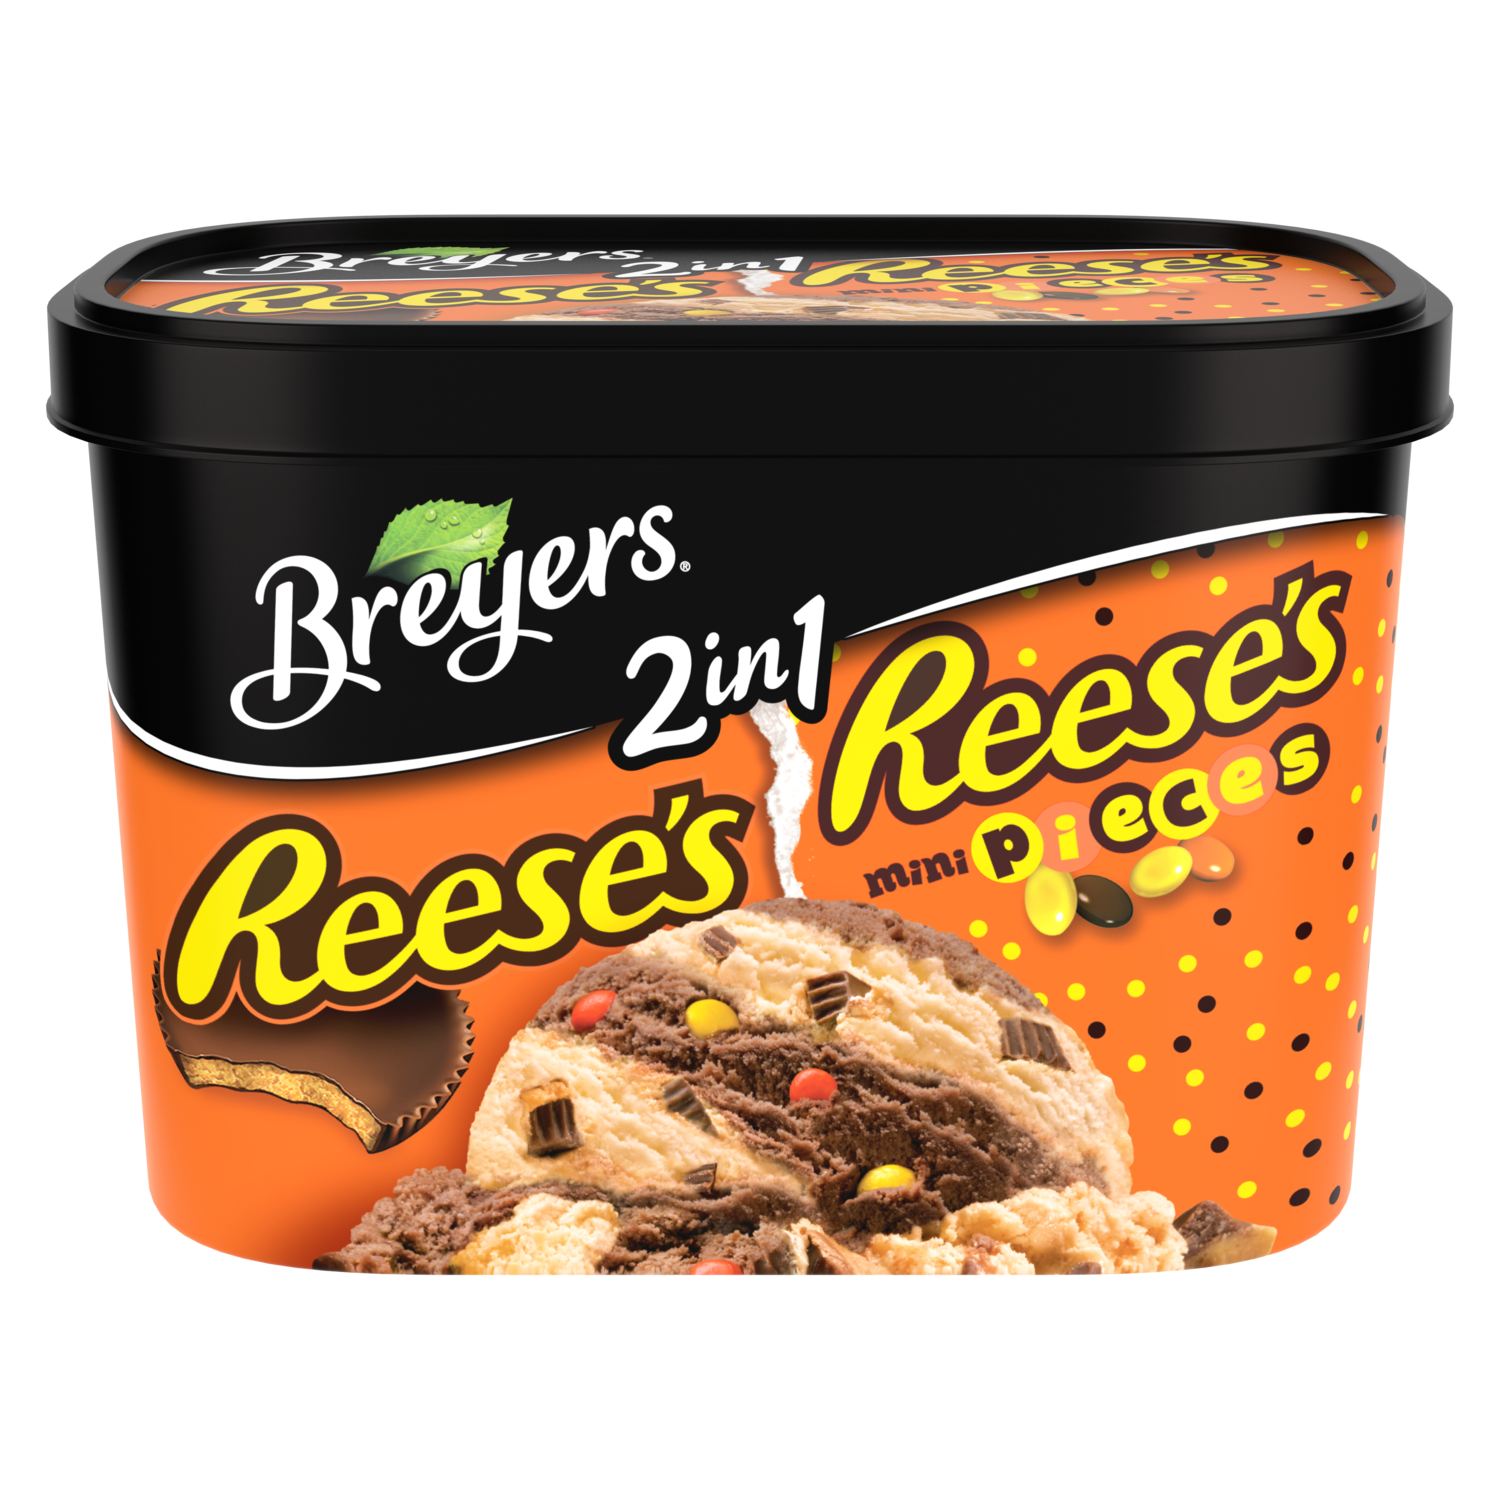 Breyers  Frozen Dairy Dessert 2in1 REESE'S REESE'S PIECES 1.5 QT